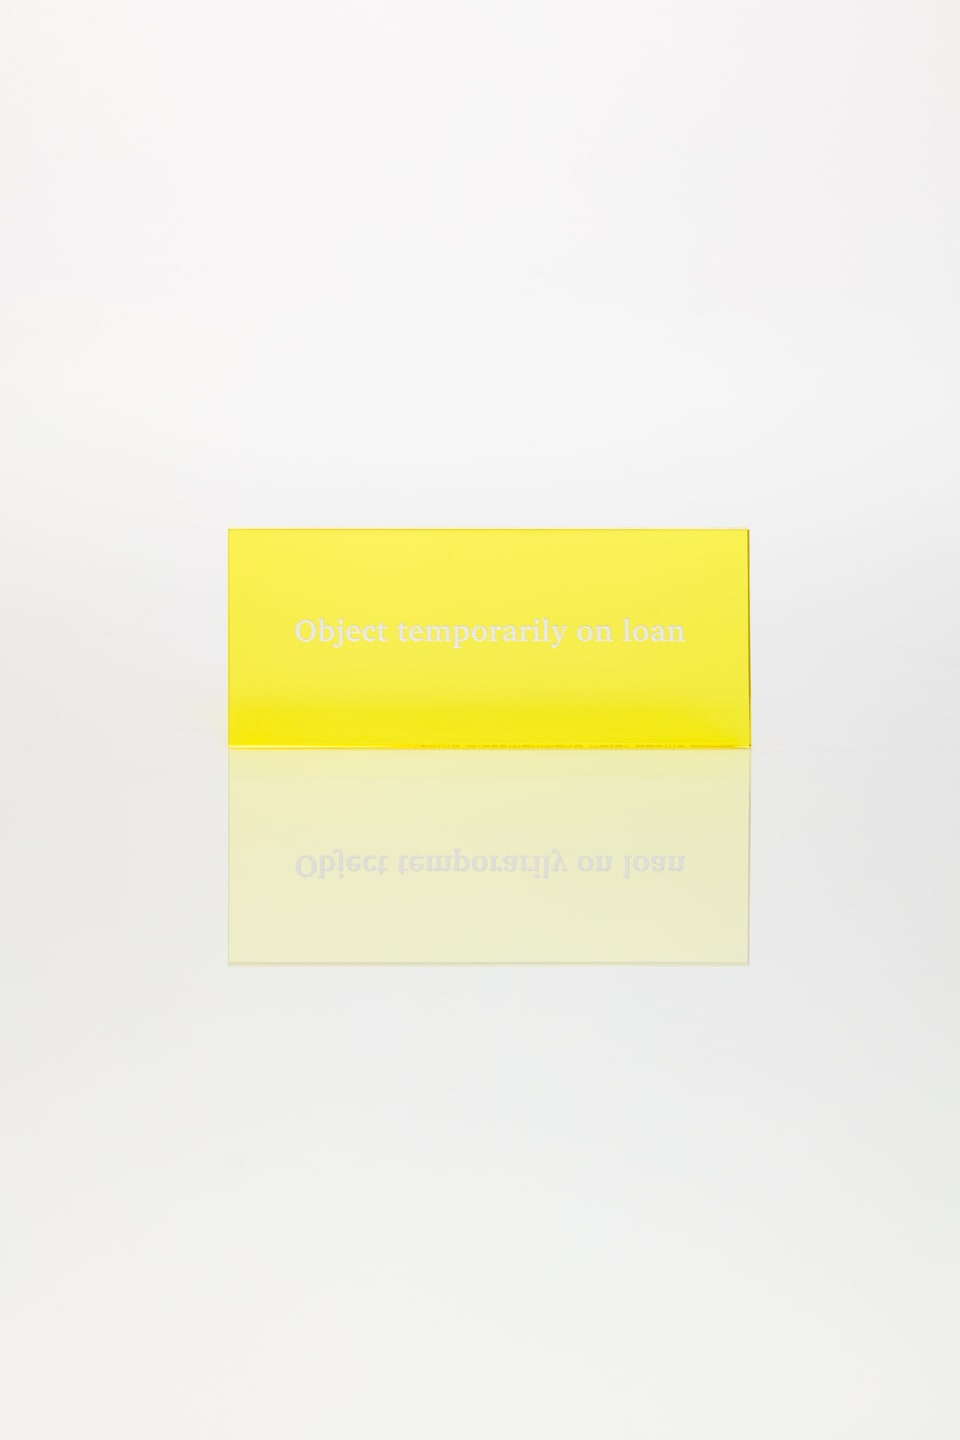 Anna Blessmann and Peter Saville Object temporarily on loan, 2013 Perspex vario tropical yellow 2T45 with white type engraved font. Accompanied by a signed certificate. 12 x 5 x 0.5 cm Edition of 20